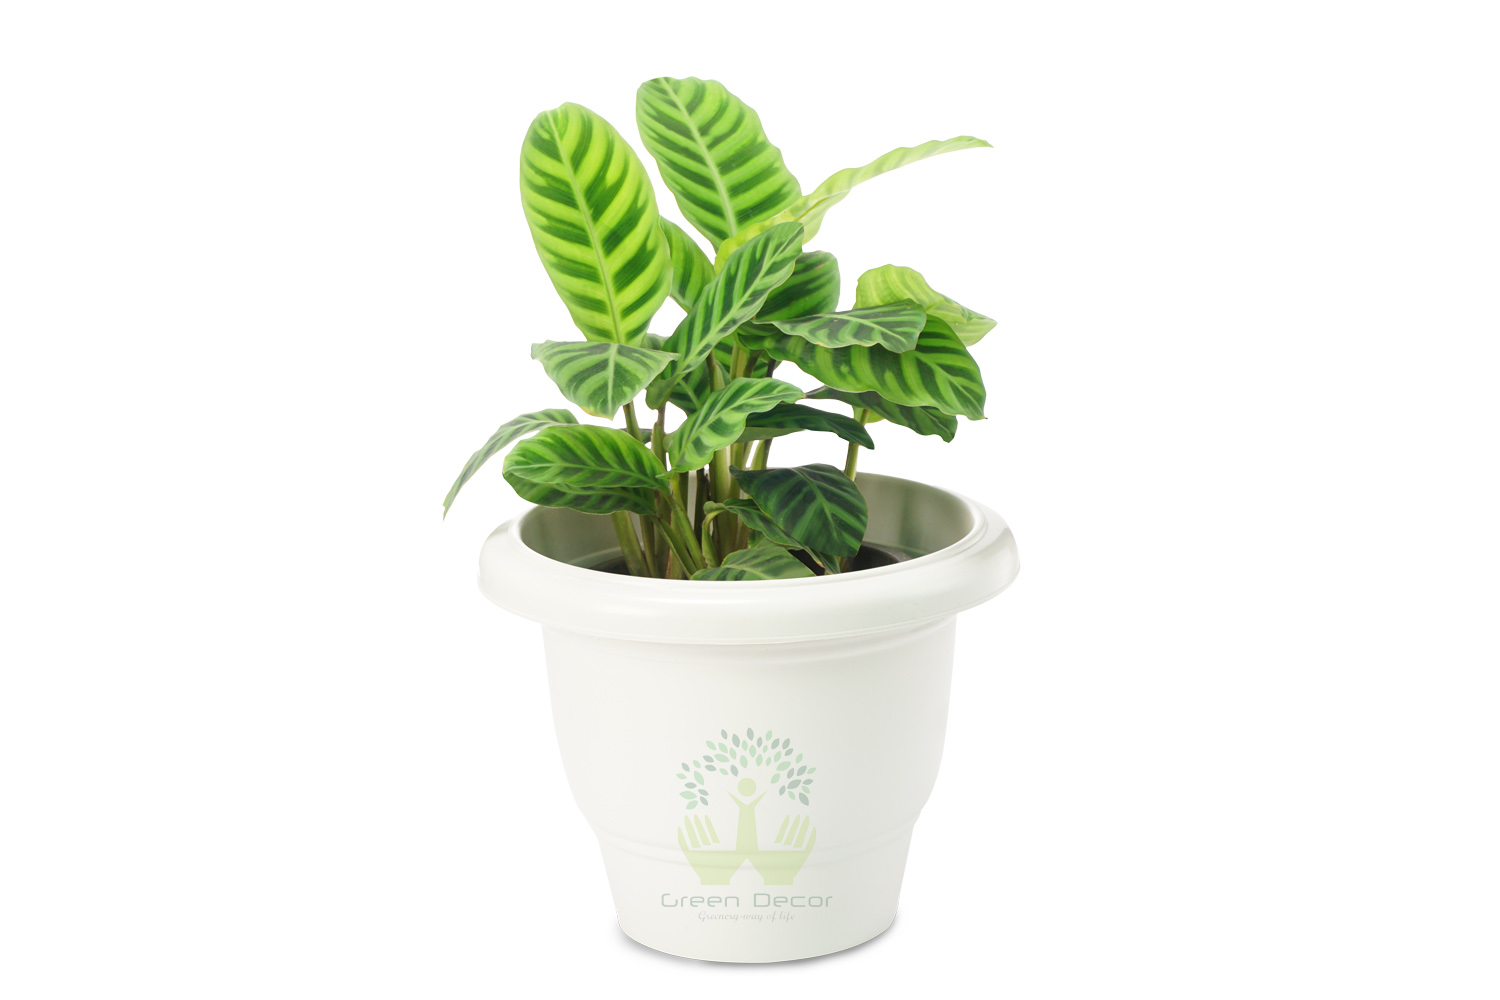 Buy Zebra Plant Front View , White Pots and Seeds in Delhi NCR by the best online nursery shop Greendecor.